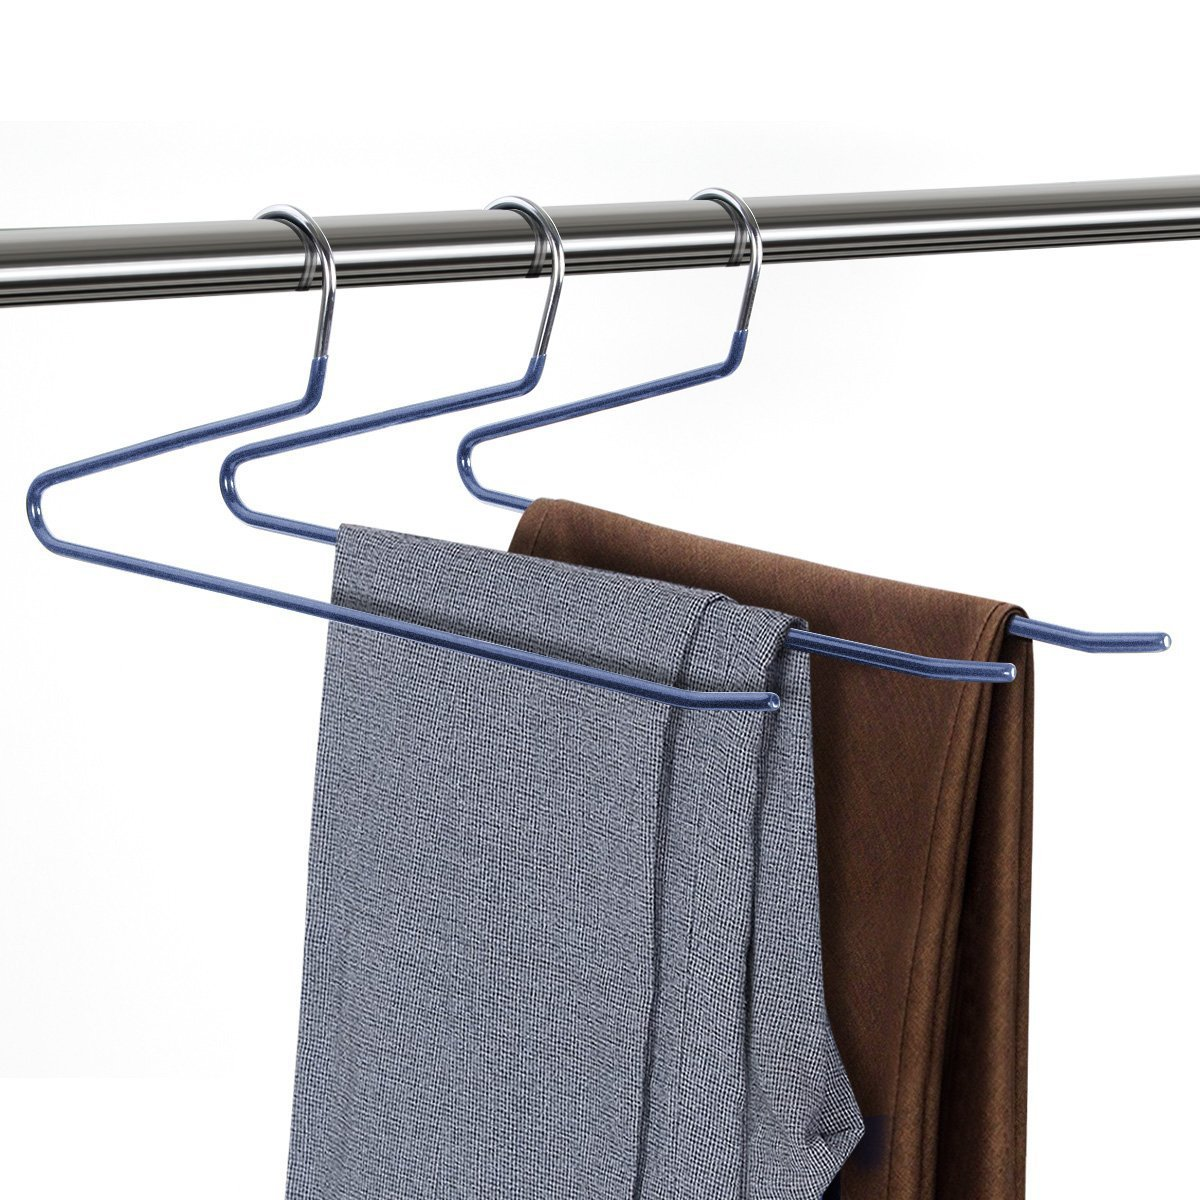 1PC Non Slip Trouser Hangers Rack S Type Multi -Layer Metal Pants Trouser Wardrobe Wet Dry Drying Hanger Save Space Organizer ...